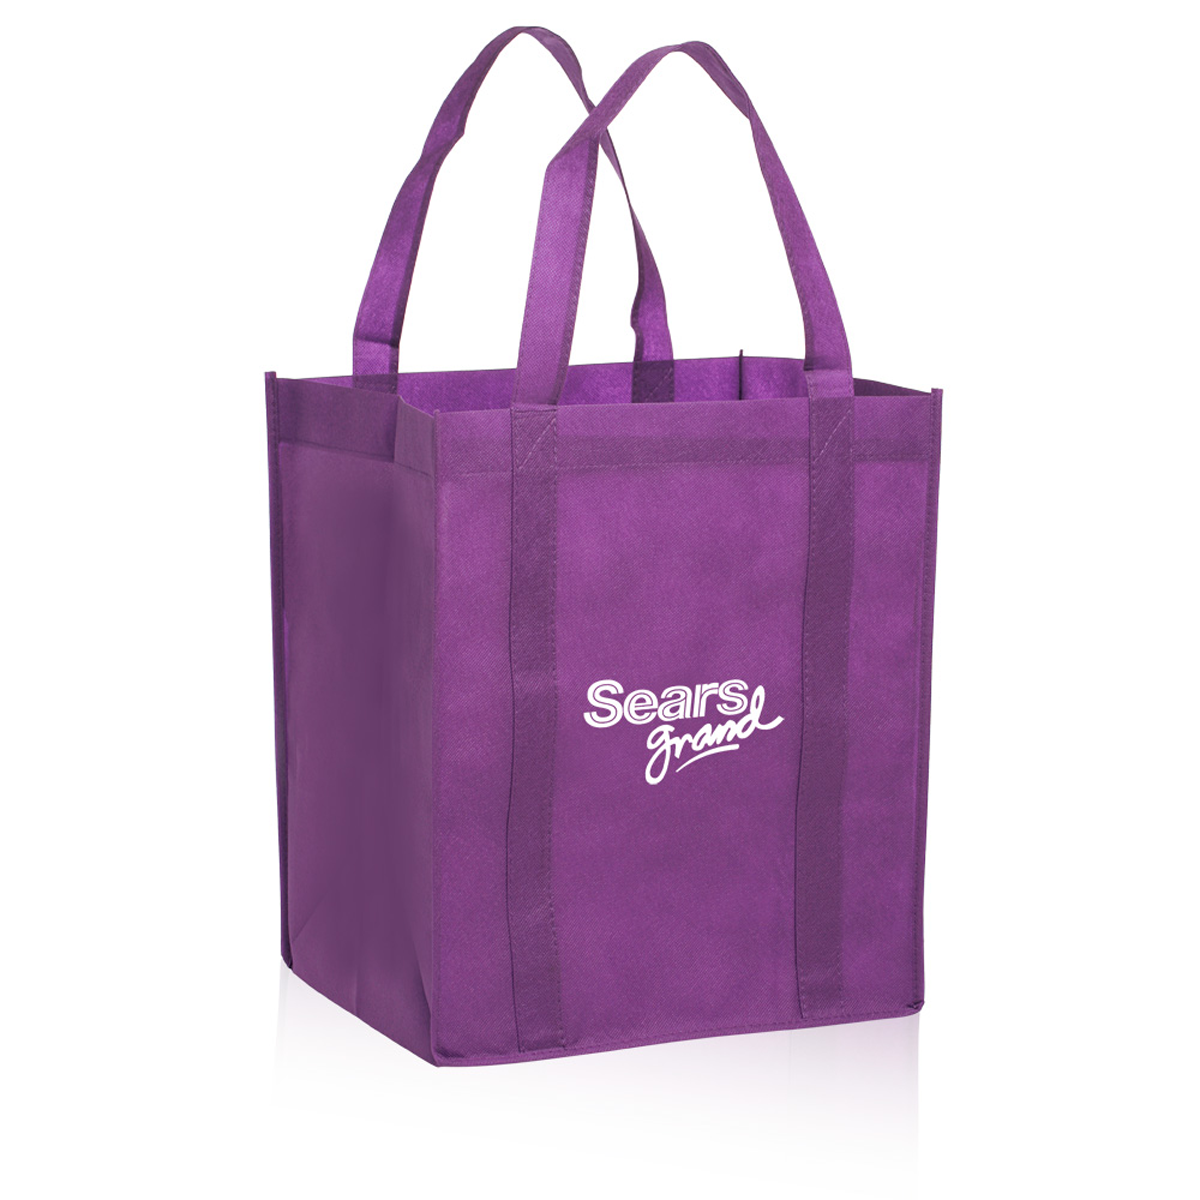 Grocery tote bags